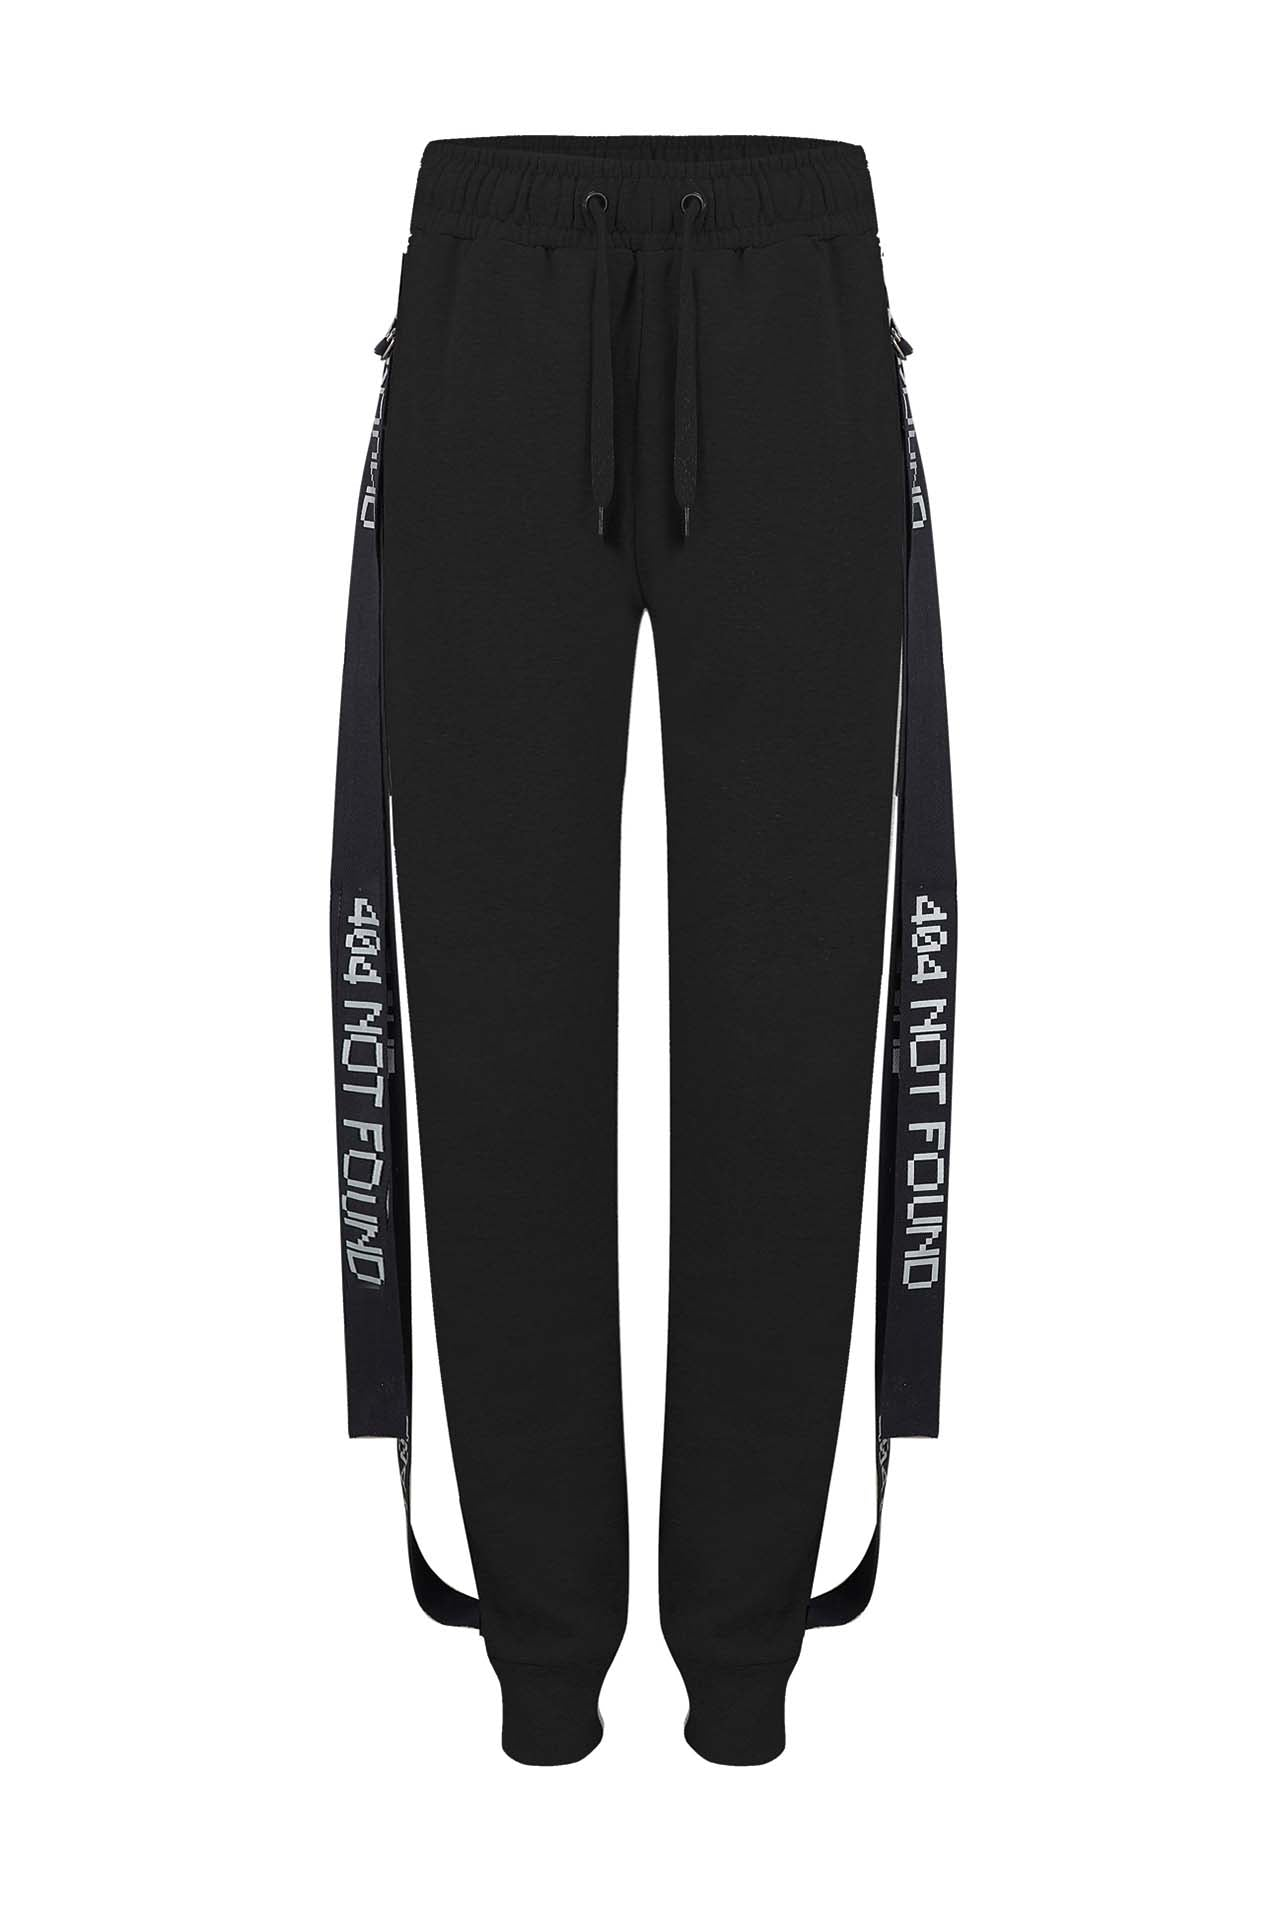 404 Trackpant